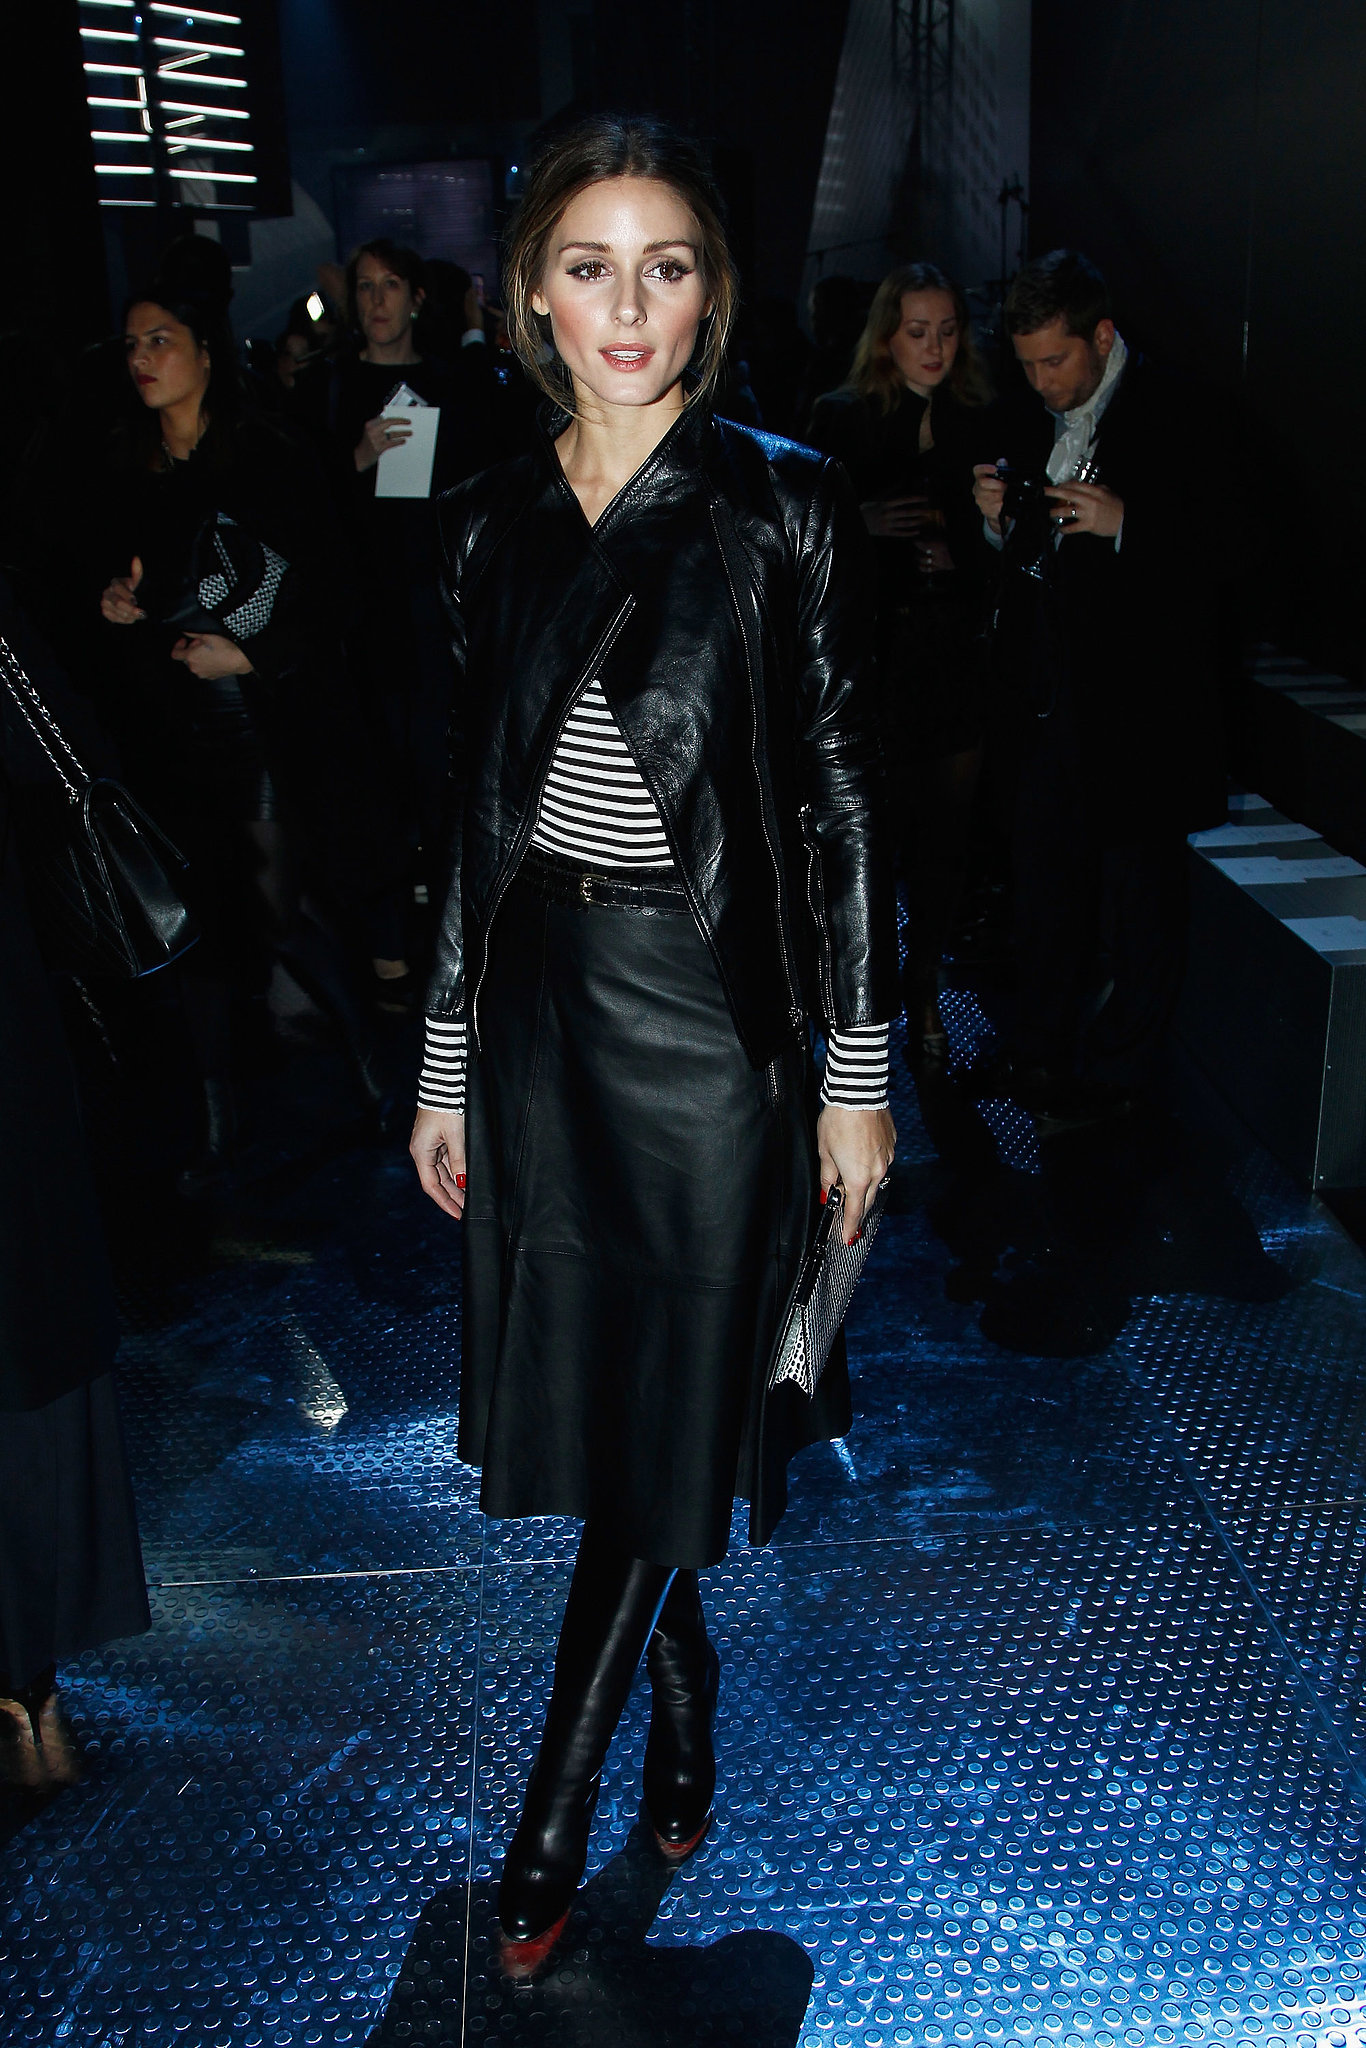 Olivia took the front row at H&M in classic stripes paired with sleek leather.